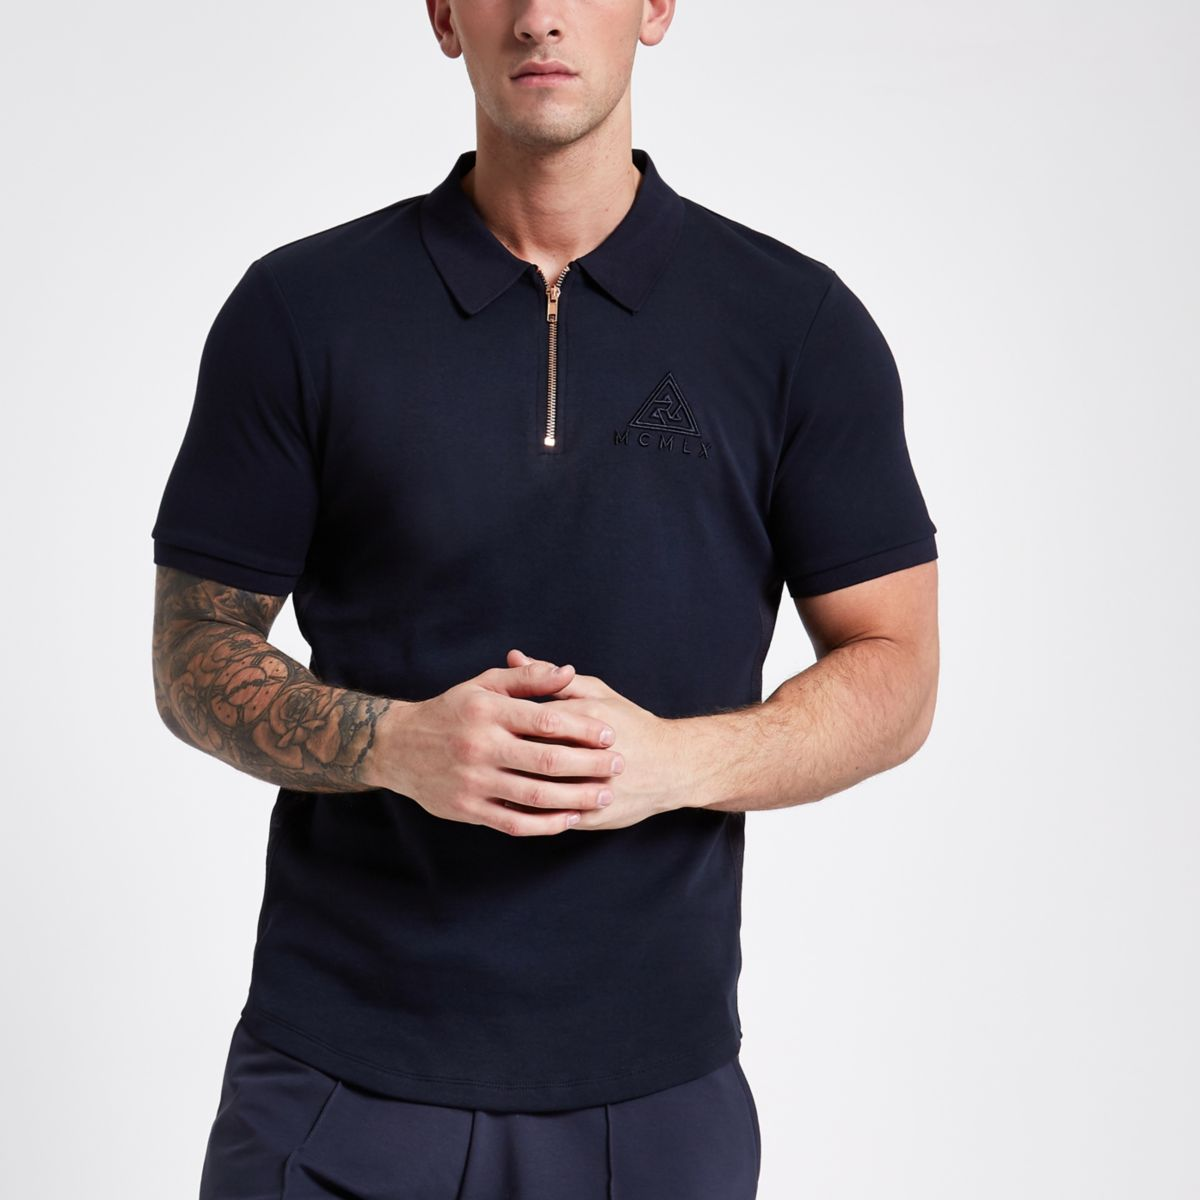 Mens Navy Essential ribbed muscle fit polo shirt River Island Cheapest e5yeGGac